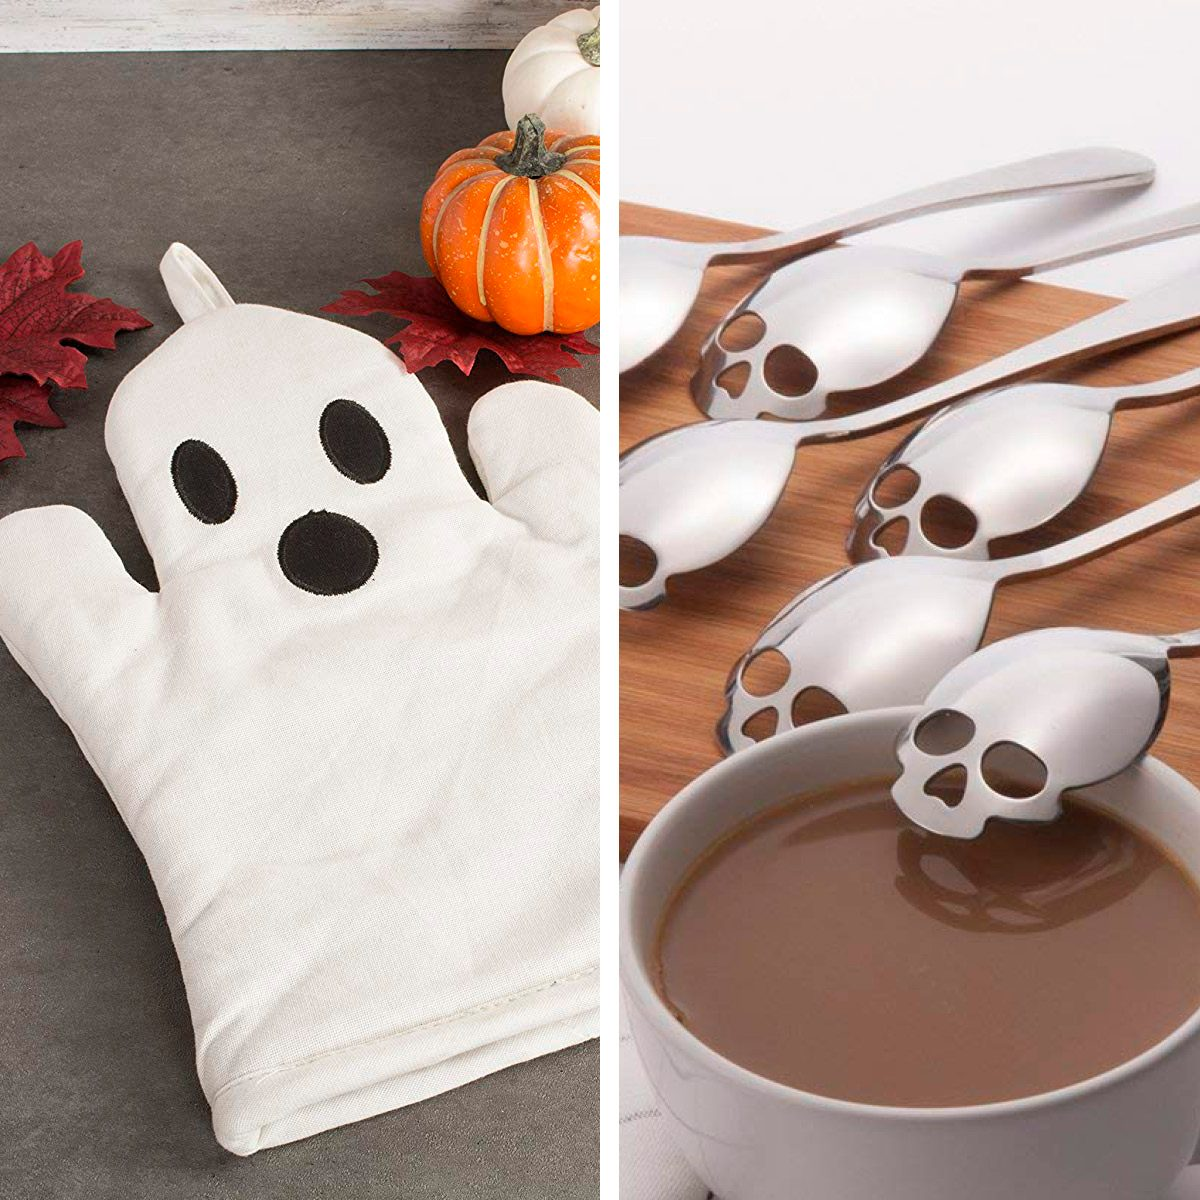 9 Spooky Halloween Decorations You'll Want in Your Kitchen